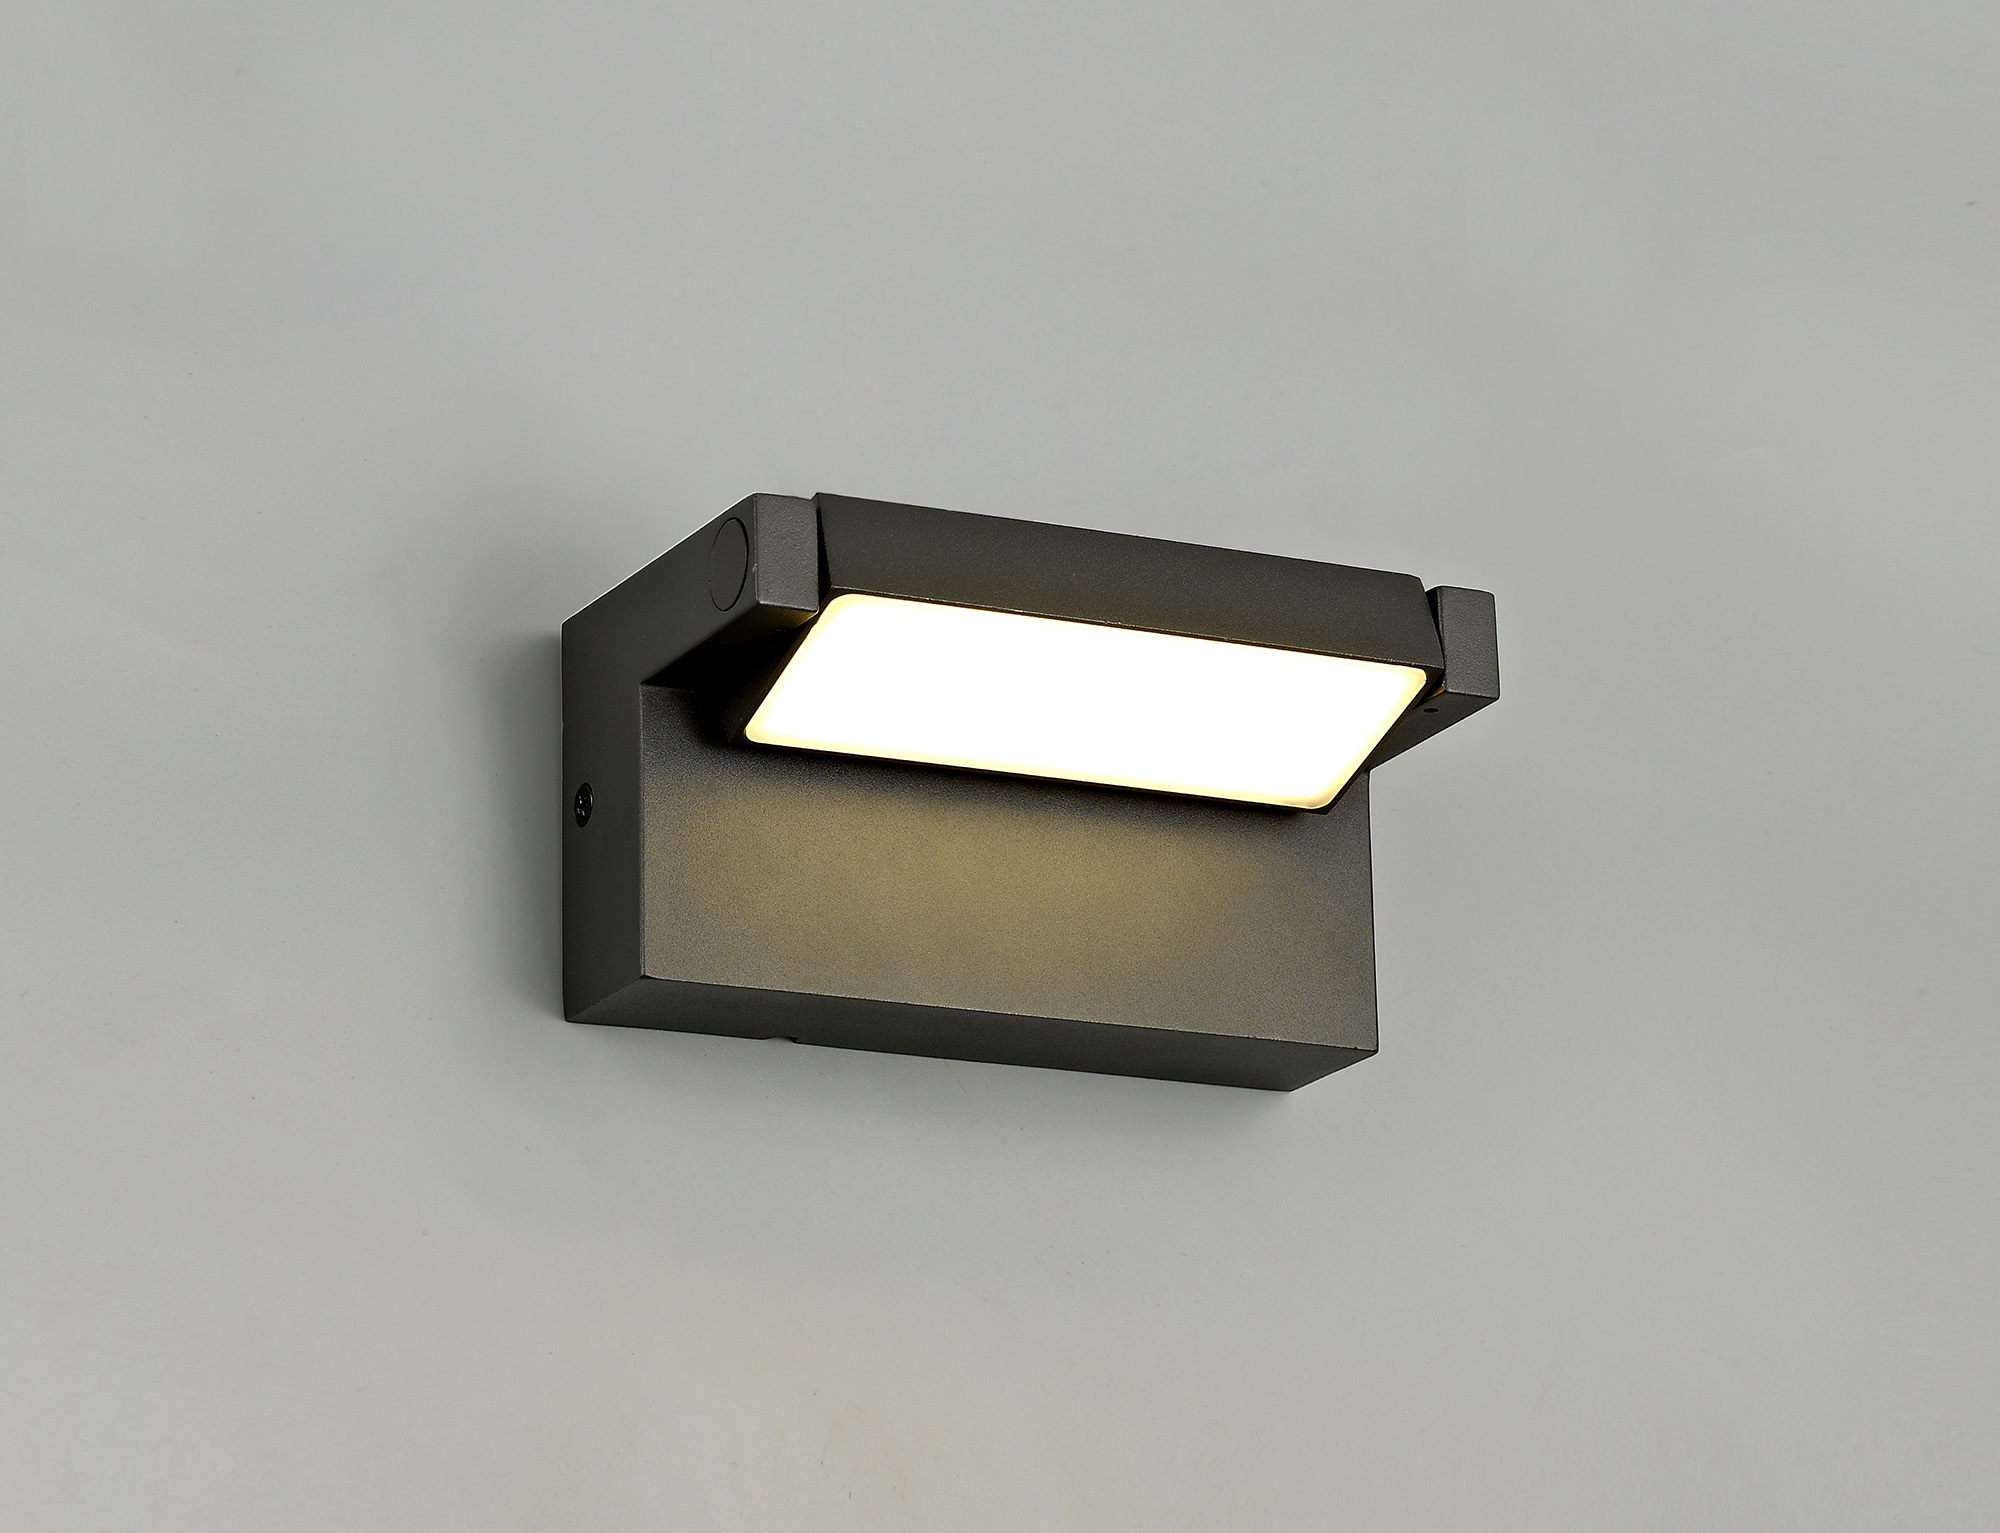 Wall Lamp Adjustable, 1 x 10W LED, 3000K, 720lm, IP54, Graphite Black, 3yrs Warranty